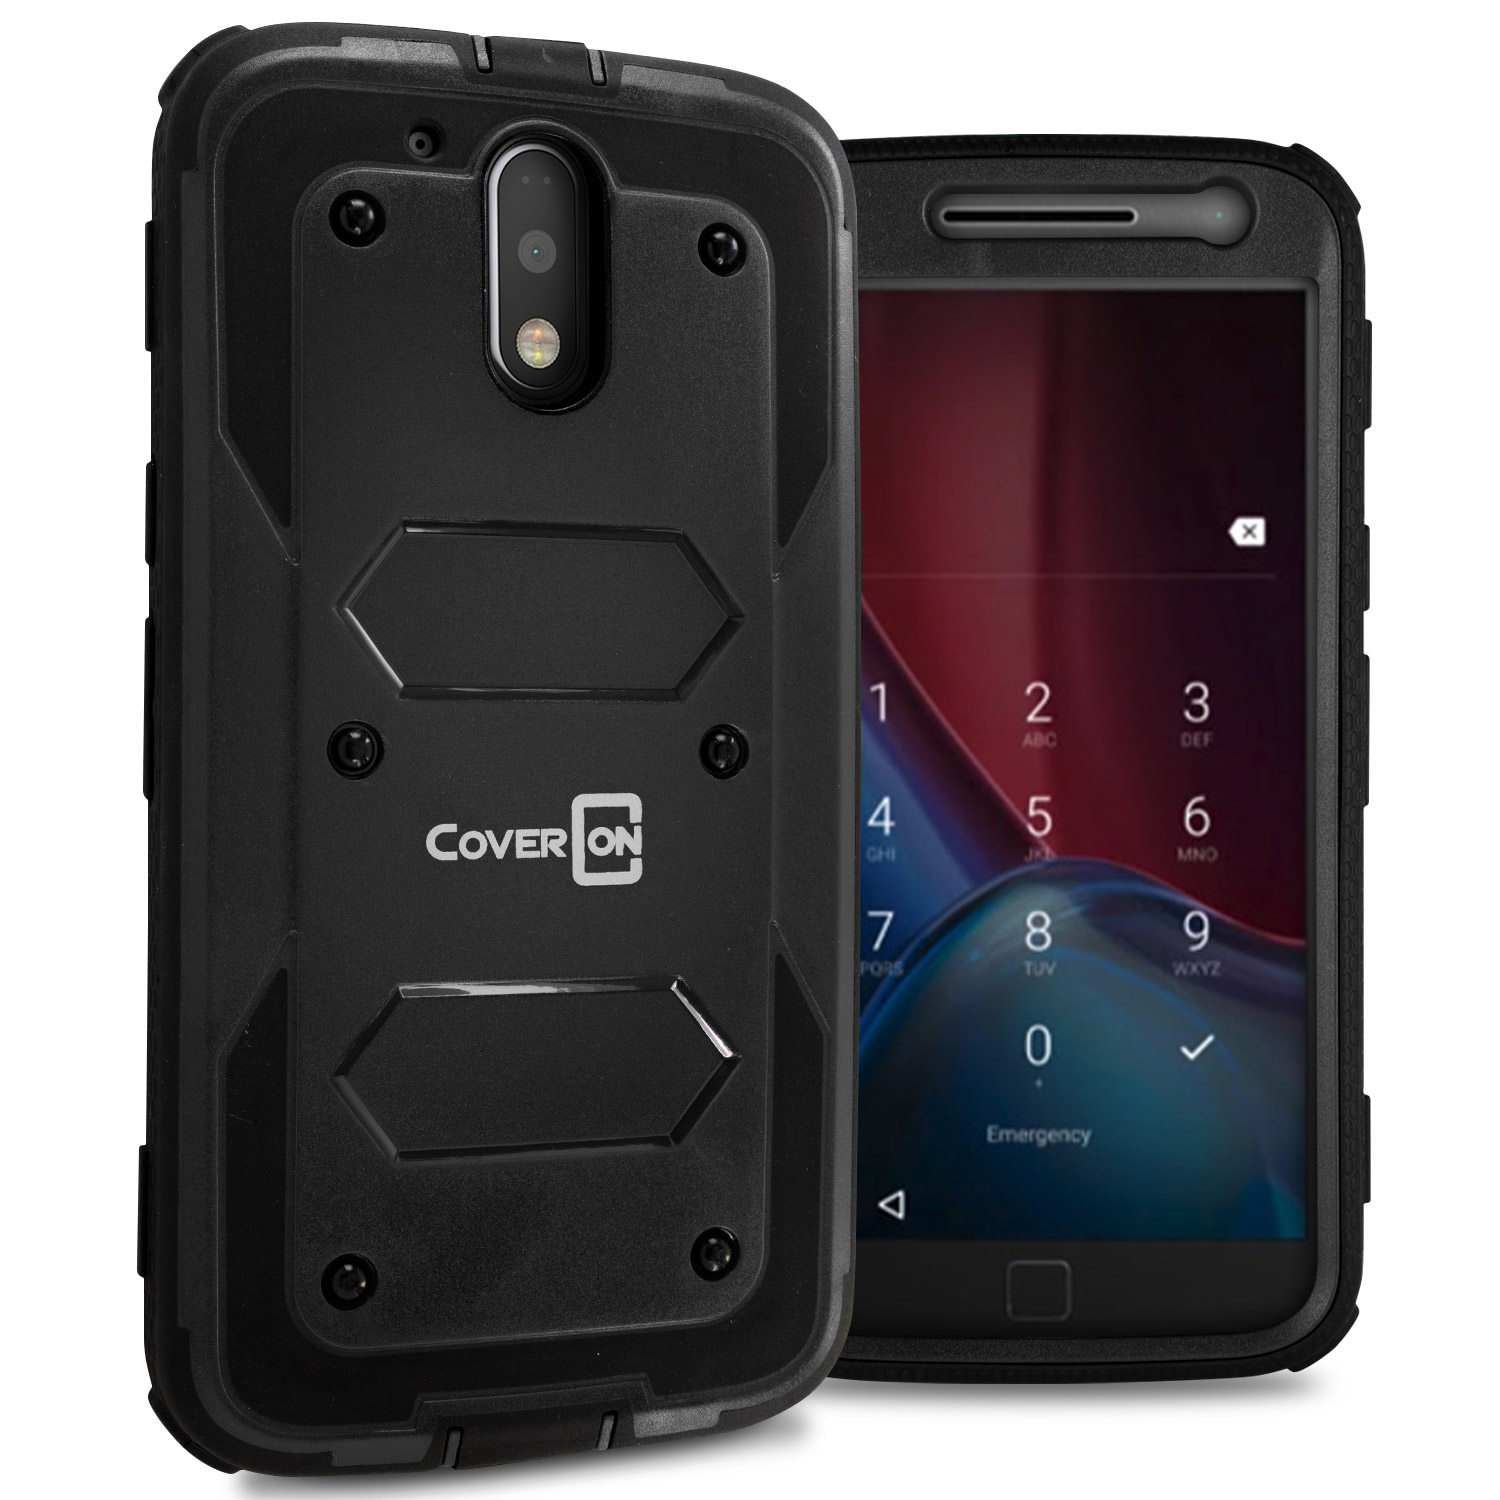 CoverON Motorola Moto G4 / G4 Plus / G 4th Gen Case, Tank Series Hard Protective Armor Phone Cover